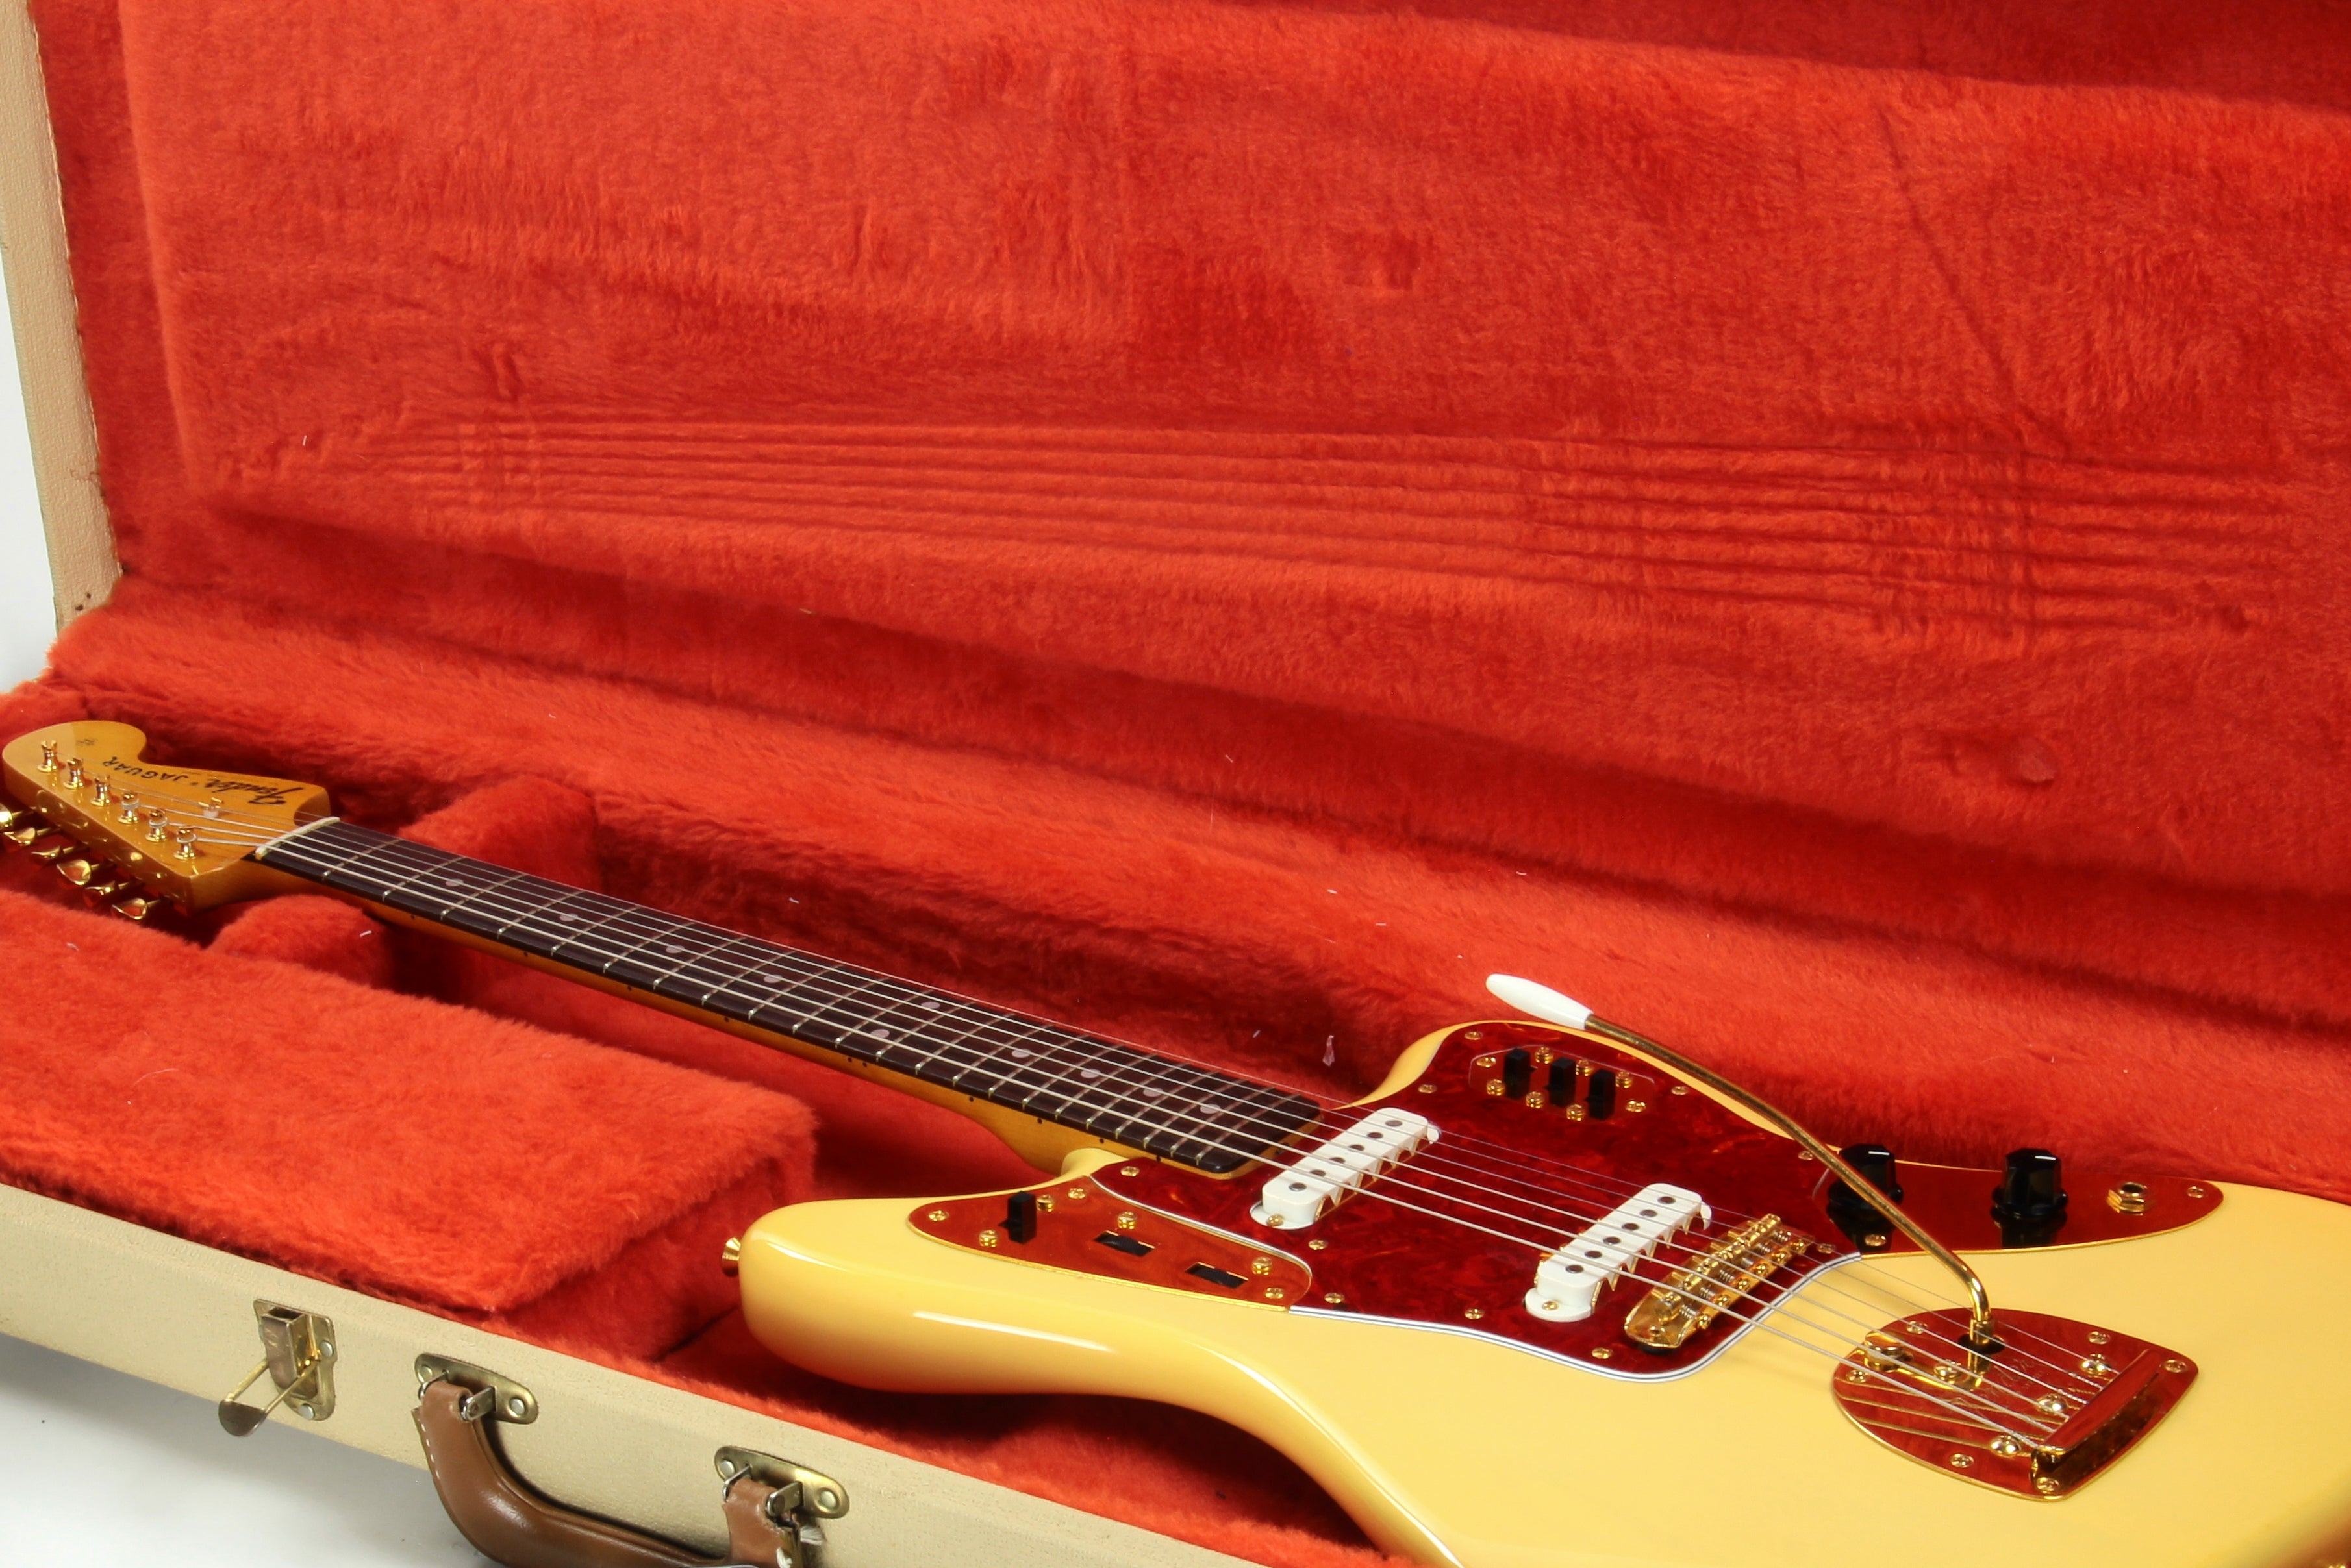 1994 Fender '62 Reissue Jaguar LE Mary Kaye Blonde - JG66-90G Special Edition Gold Hardware